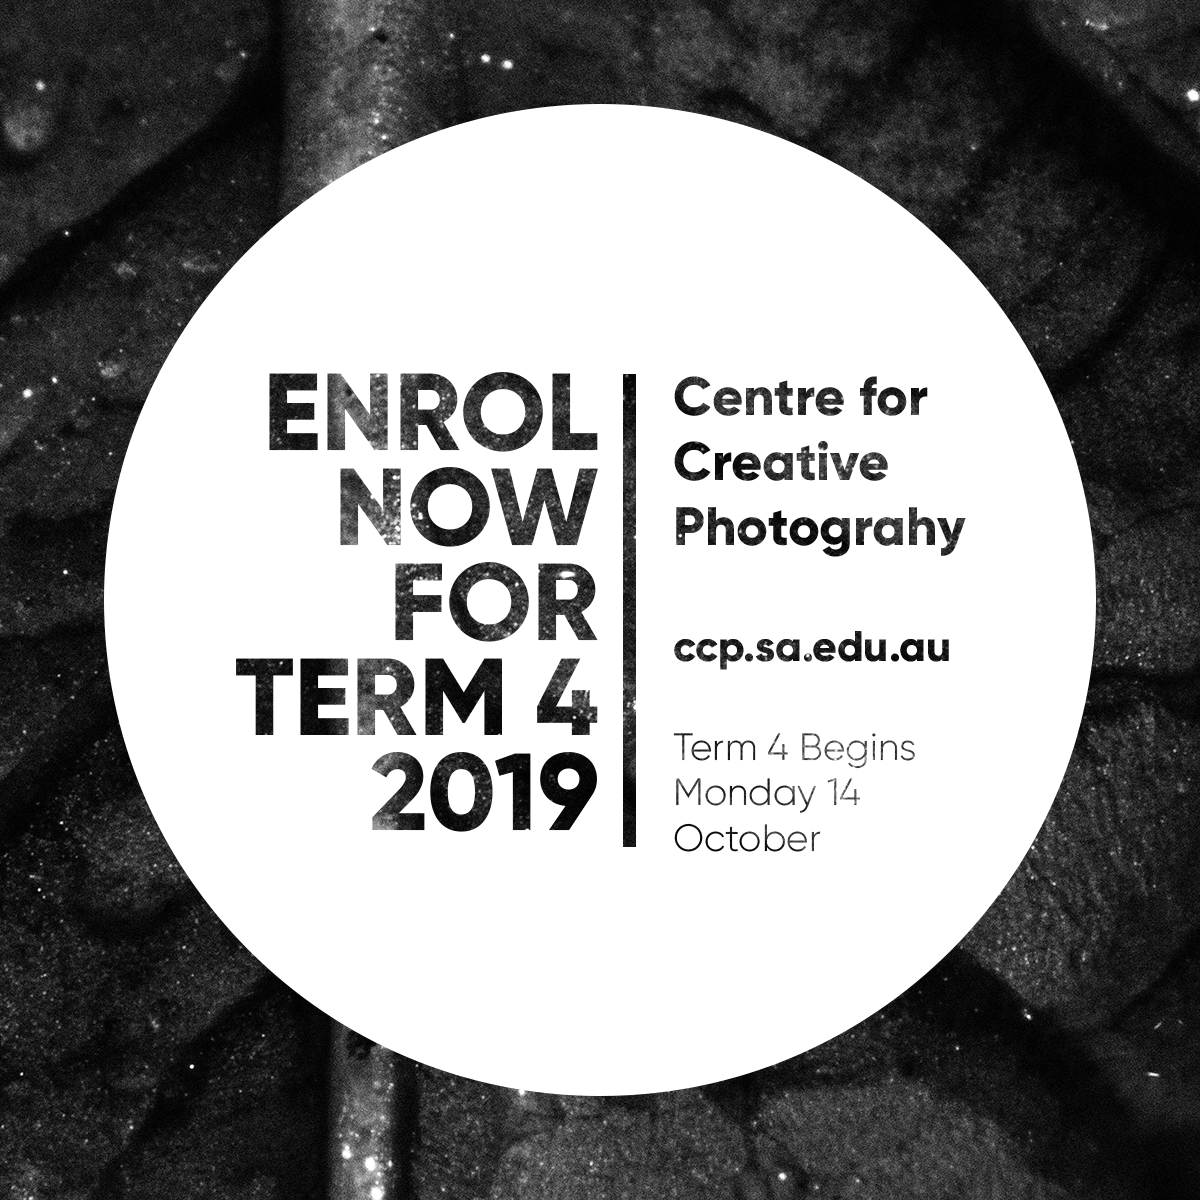 centre-for-creative-photography-enrol-now-for-term-4